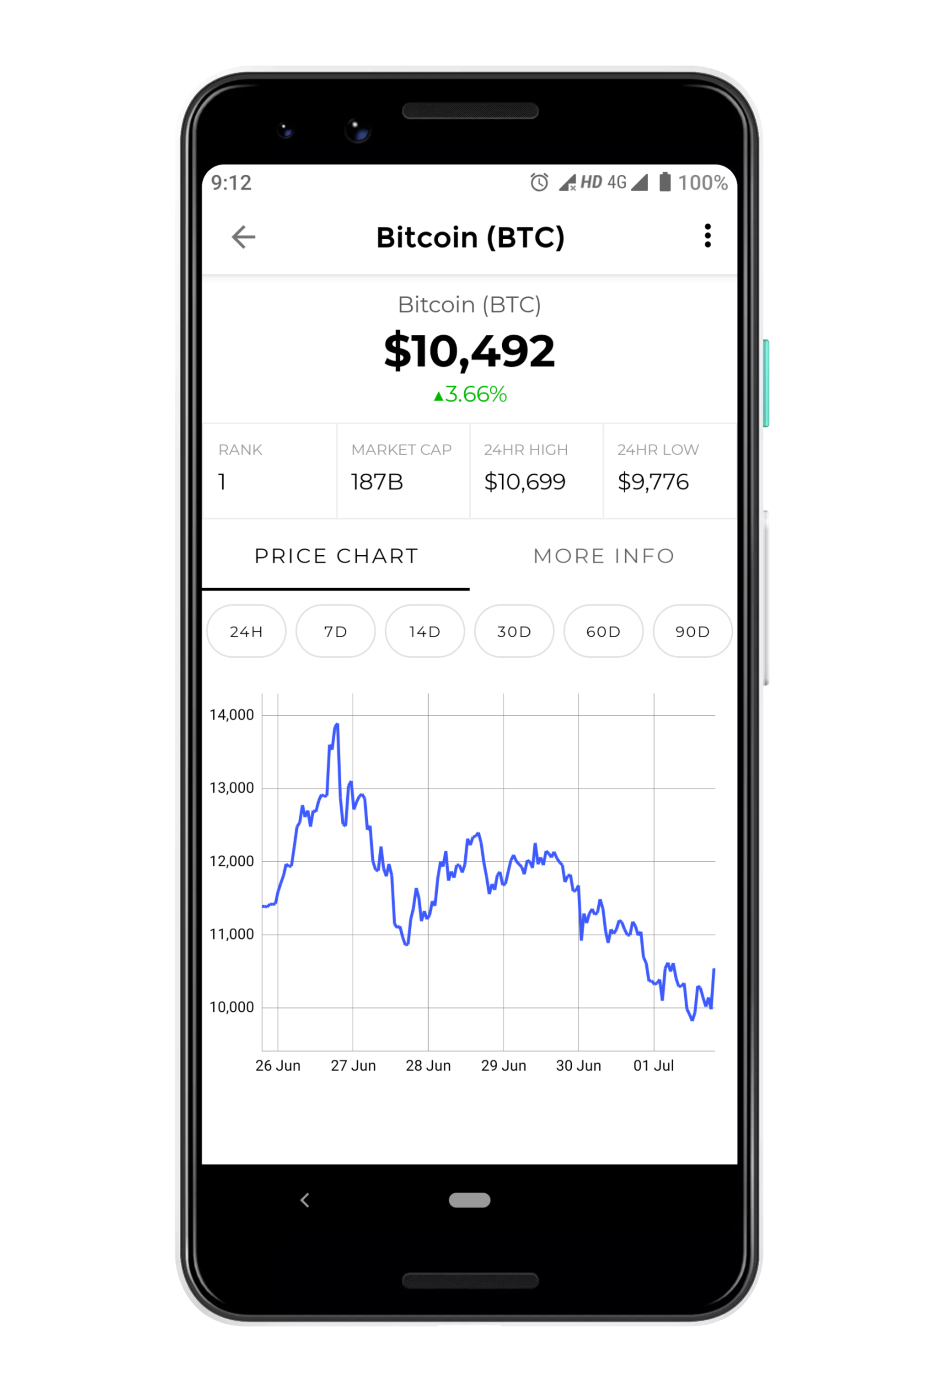 Coin watch Cryptocurrency tracker - Detailed market data charts Susheel karam